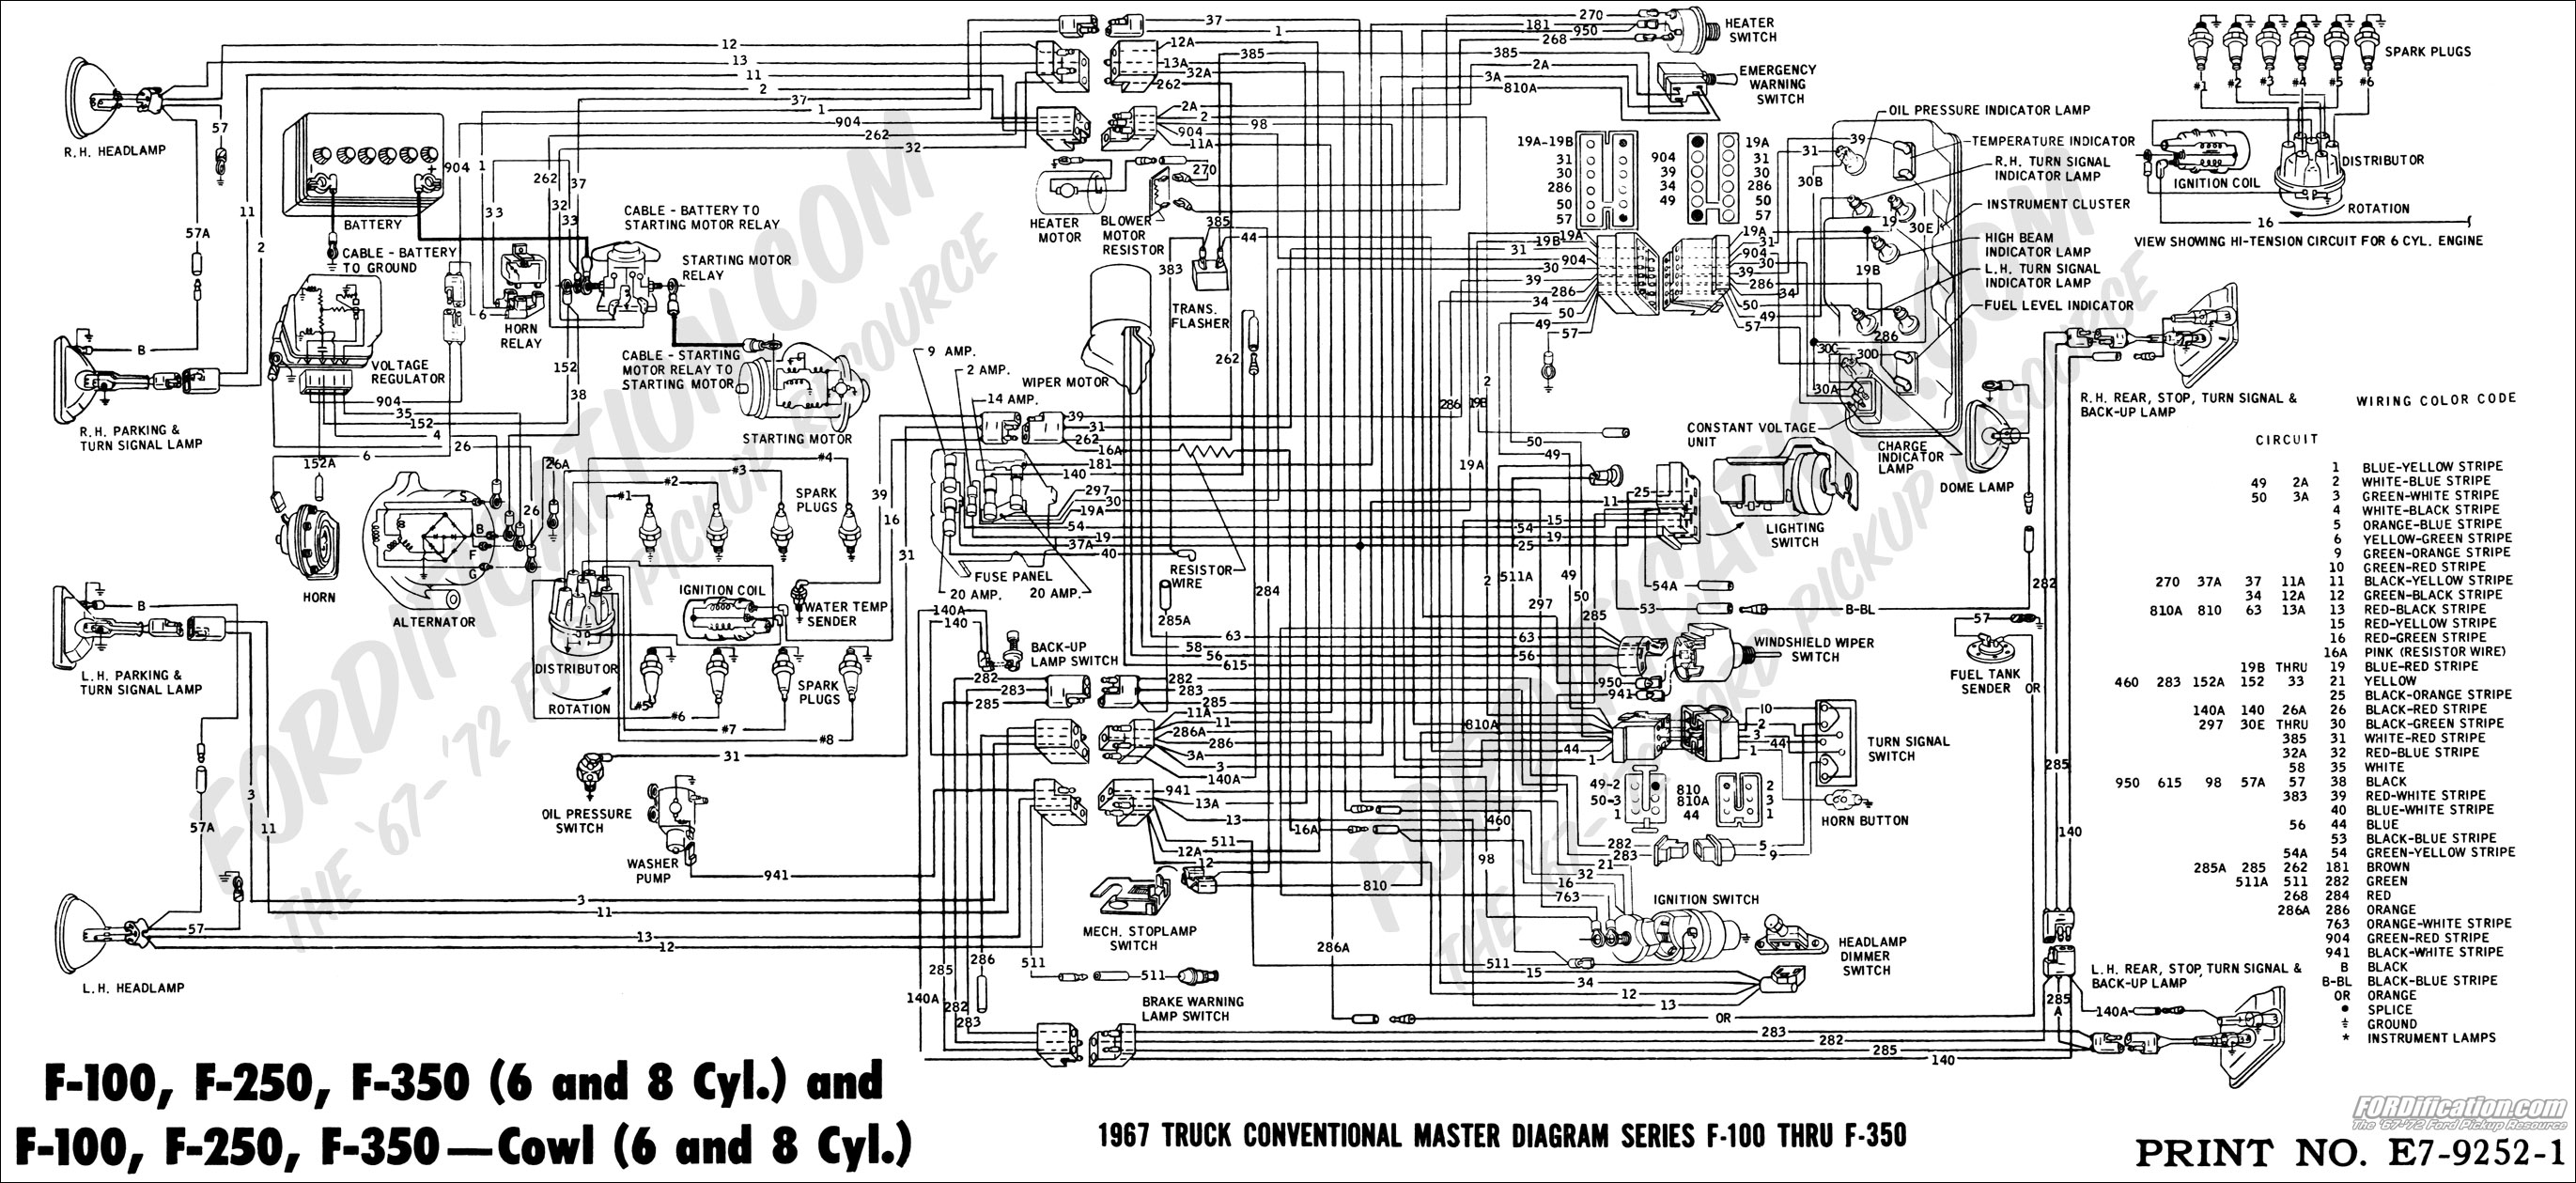 67masterdiagram ford f150 wiring diagram pdf 84 ford f 150 wiring diagram \u2022 wiring 84 ford f150 wiring diagram at n-0.co